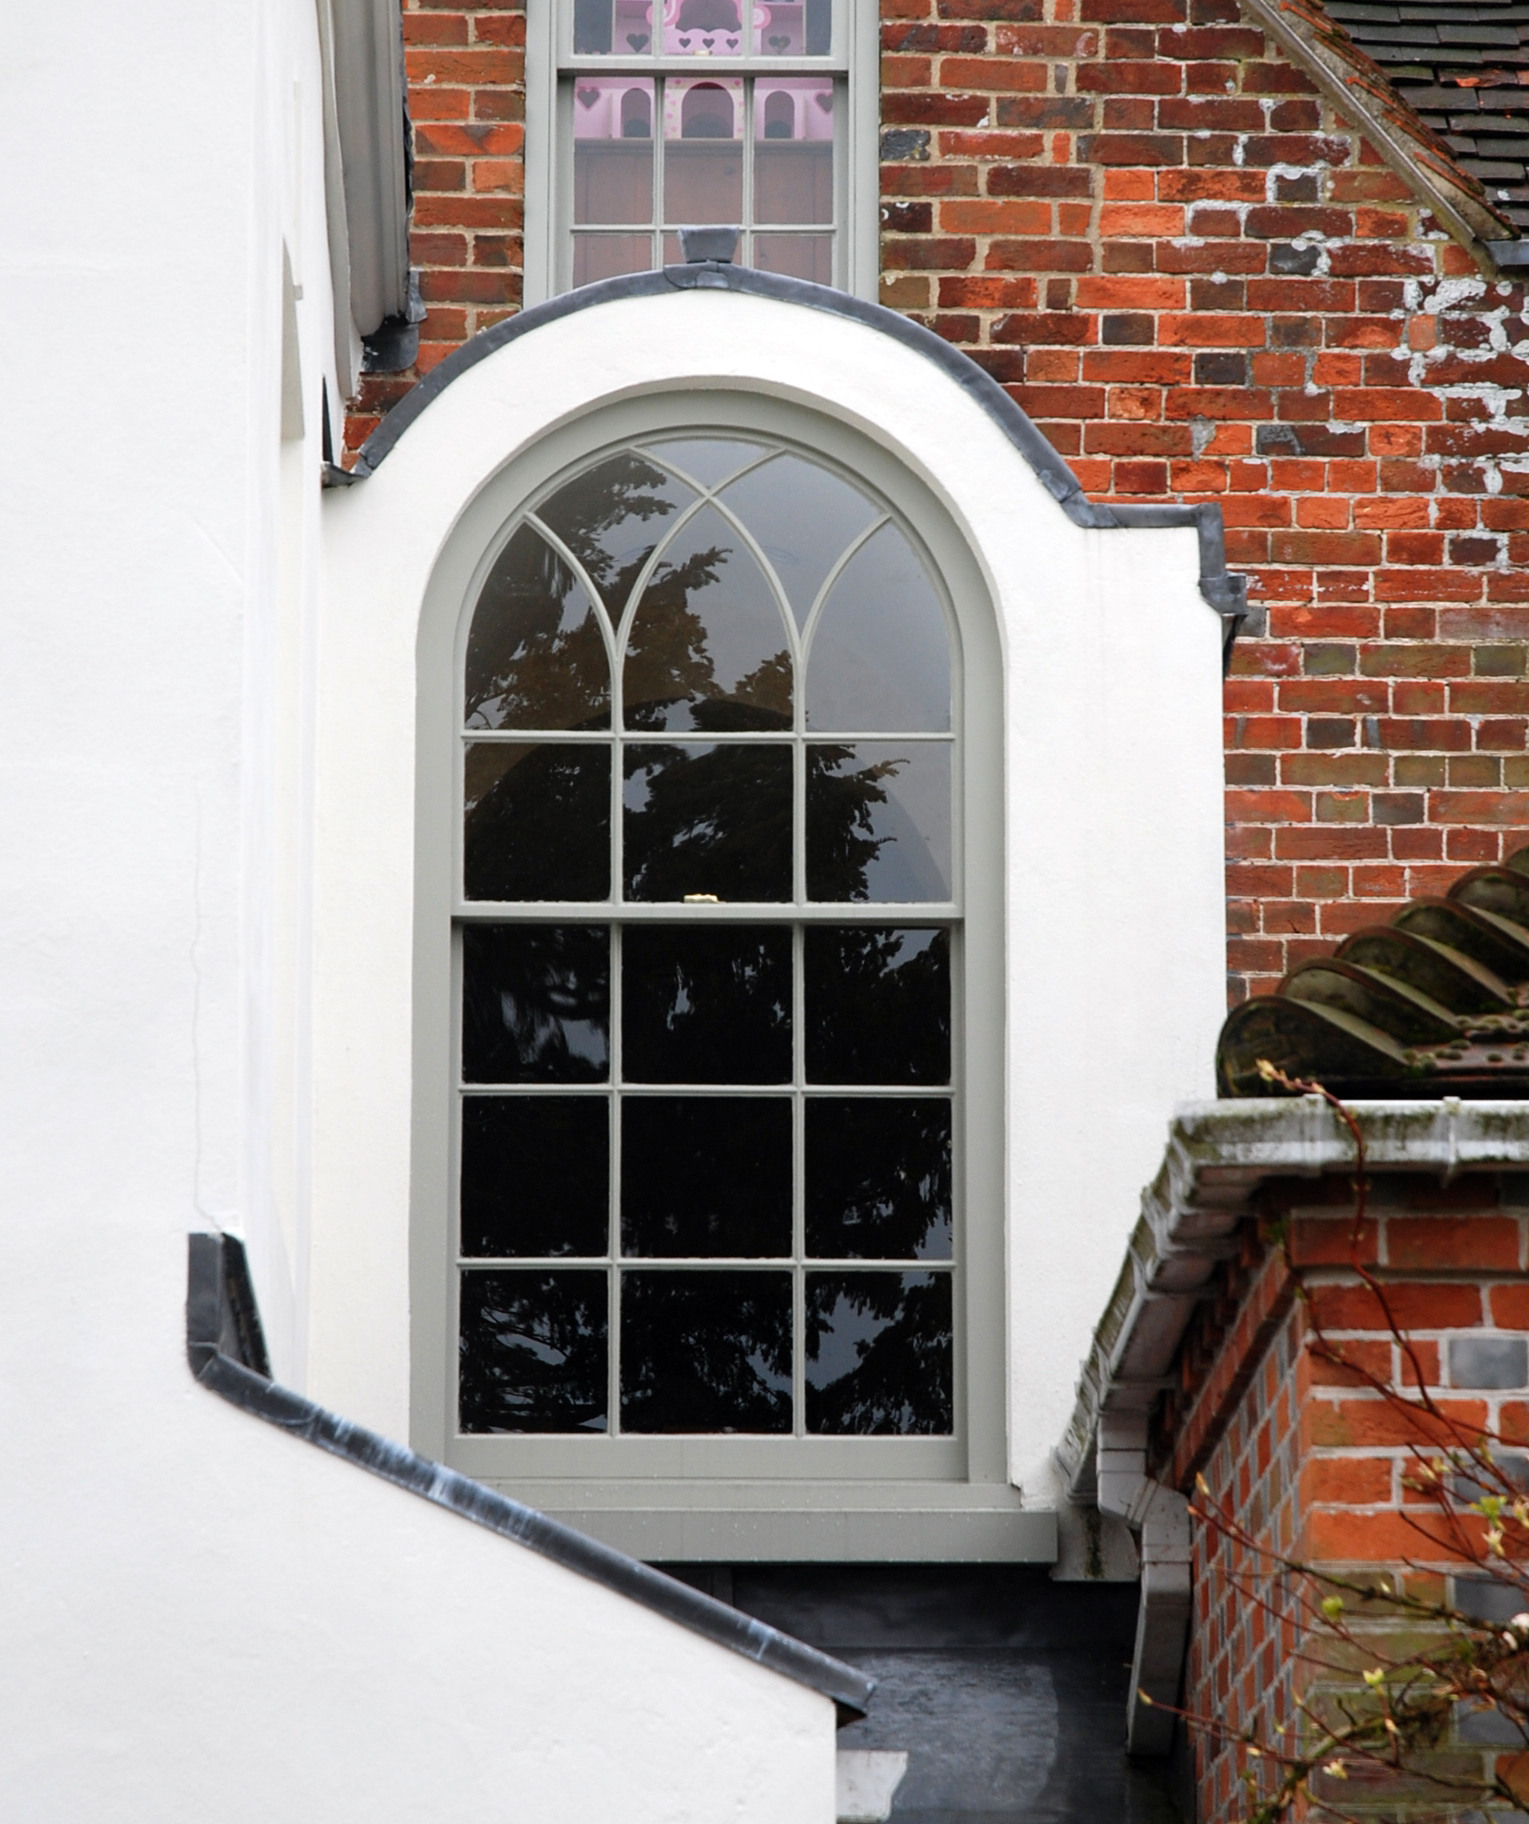 Exterior view of arched window, and how it has been integrated with the historical buidling.